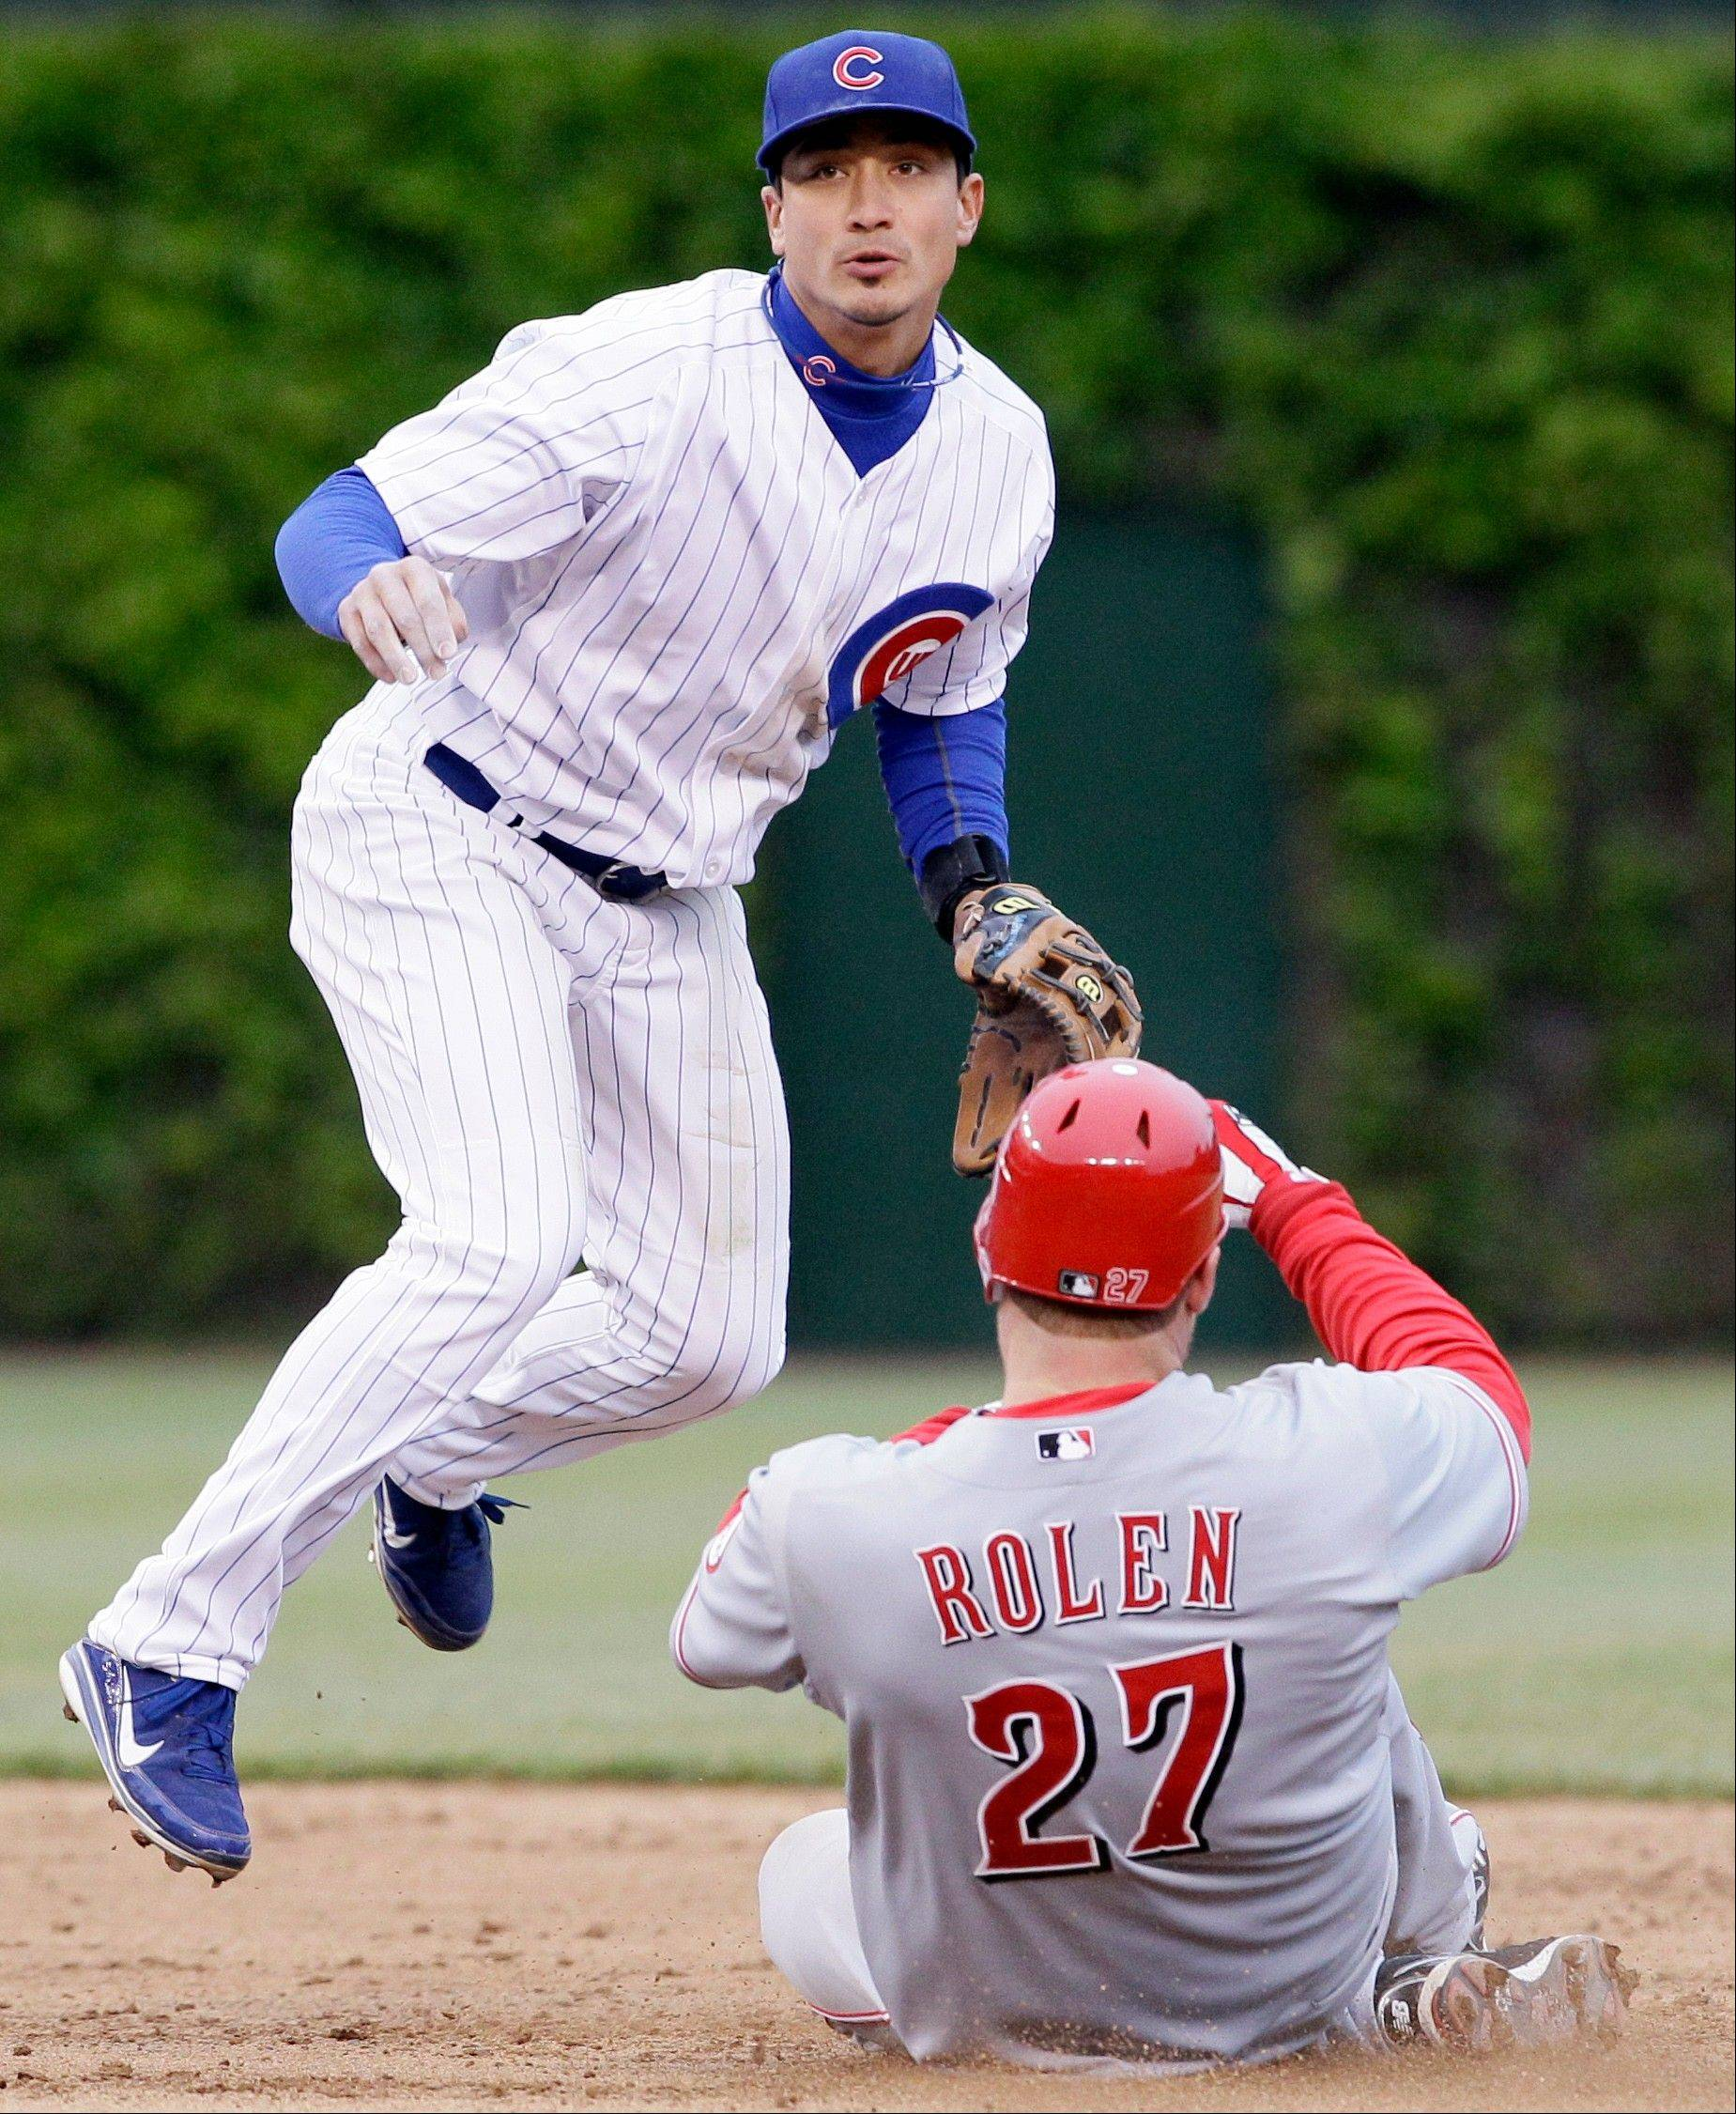 The defensive play by Cubs second baseman Darwin Barney, left, and shortstop Starlin Castro has solidified the team's defense, one of key improvements this season.